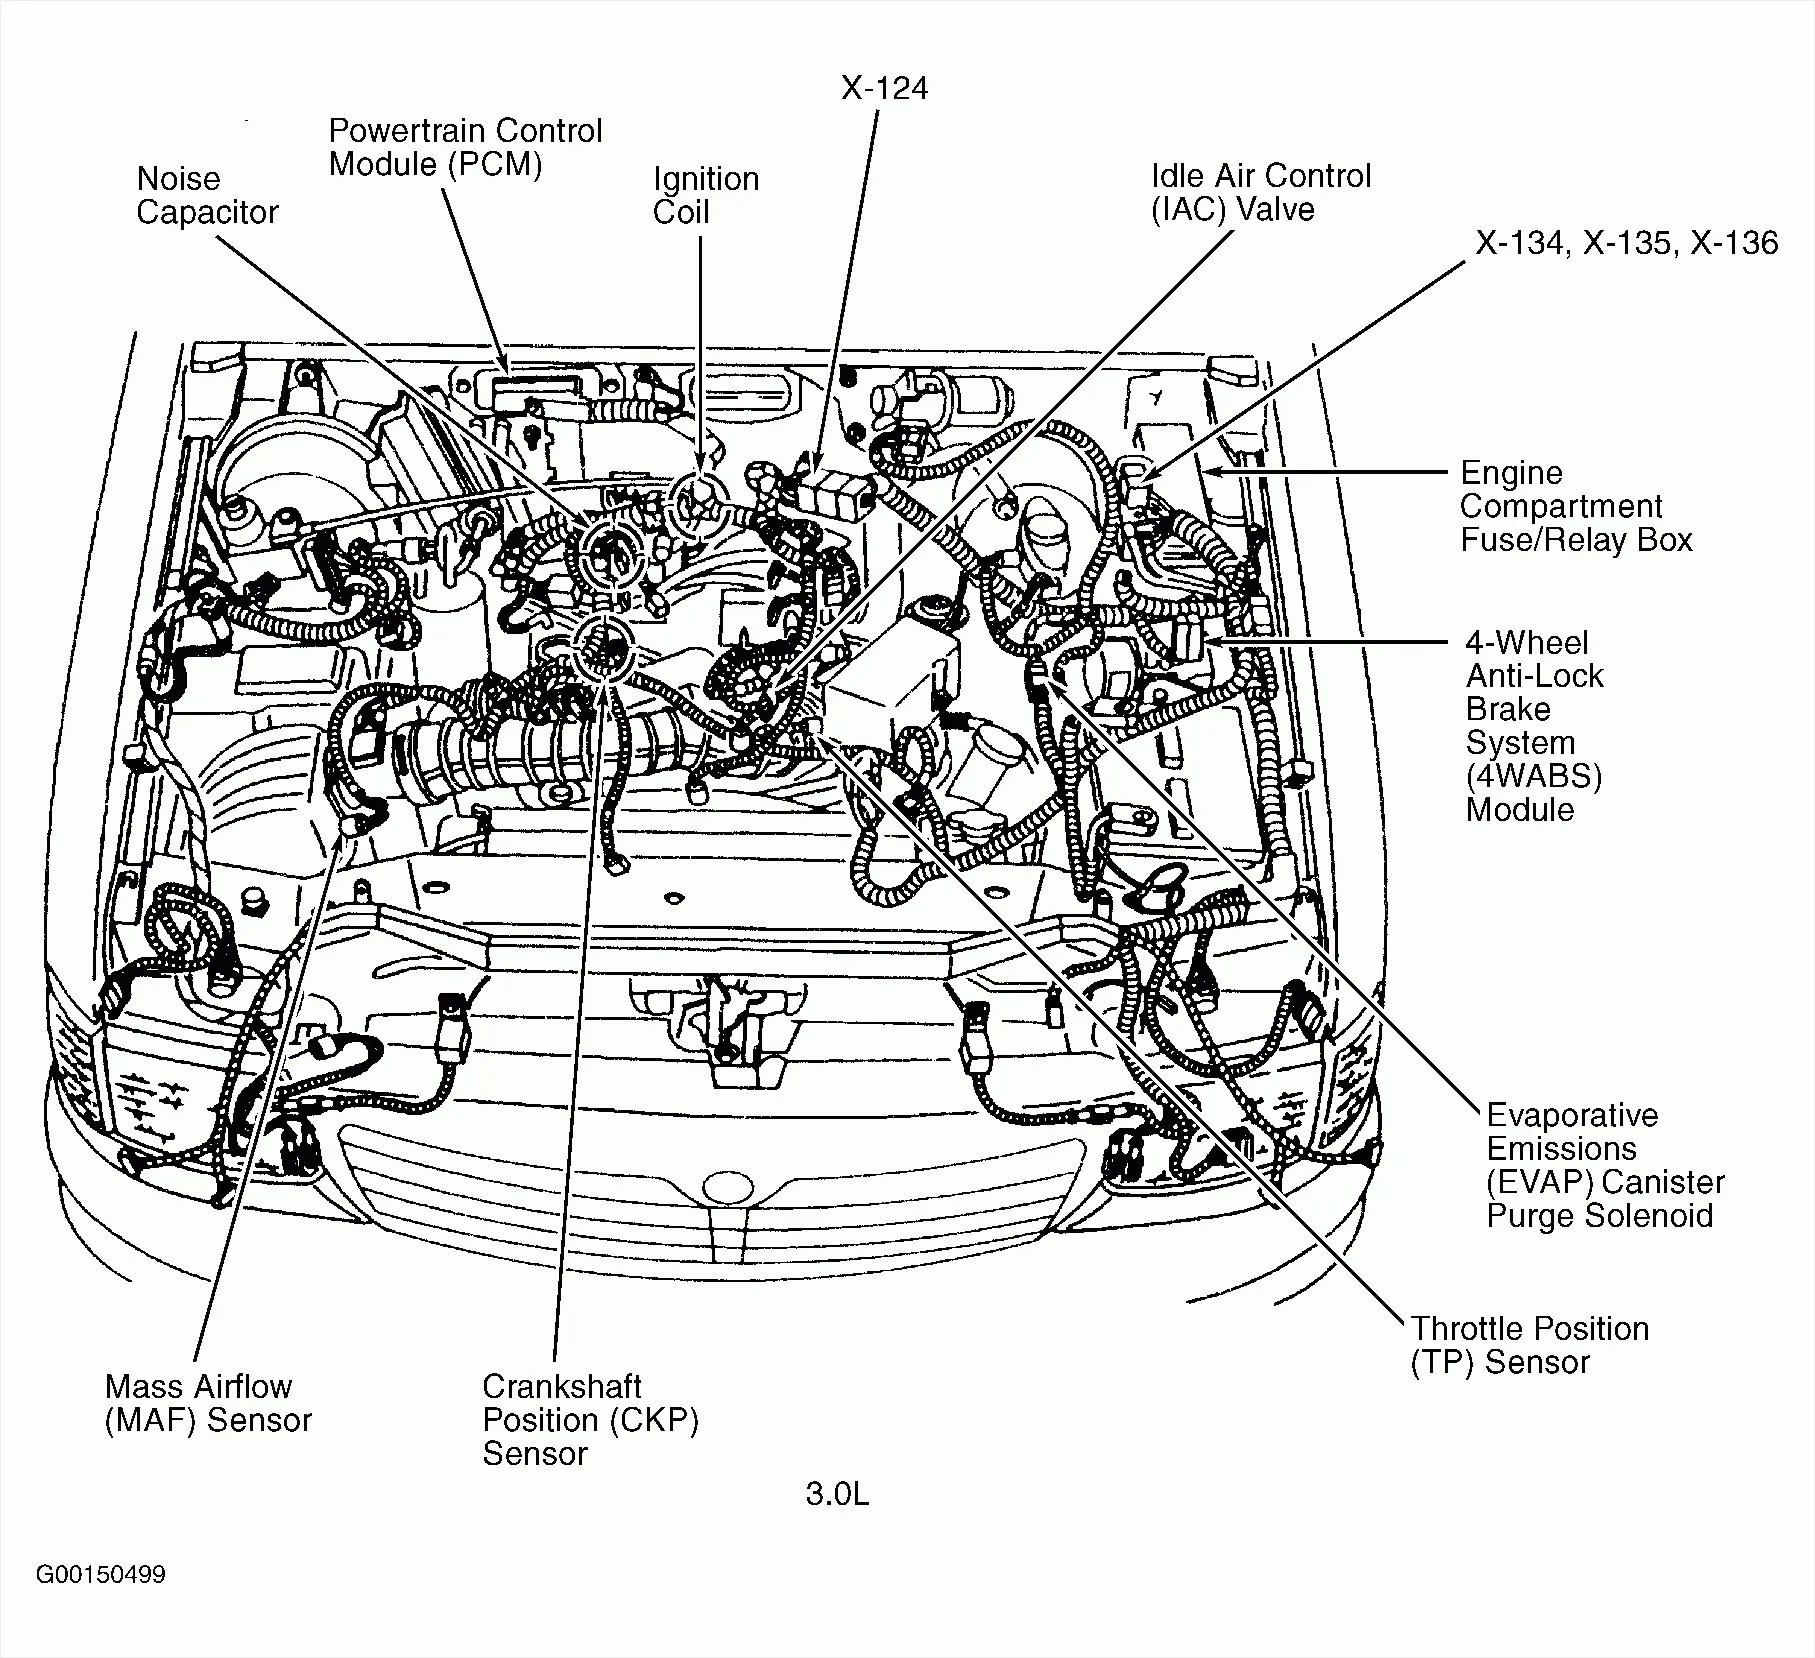 small resolution of 2008 audi a6 engine bay diagram wiring database library rh 31 arteciock de e46 engine bay diagram engine bay diagram